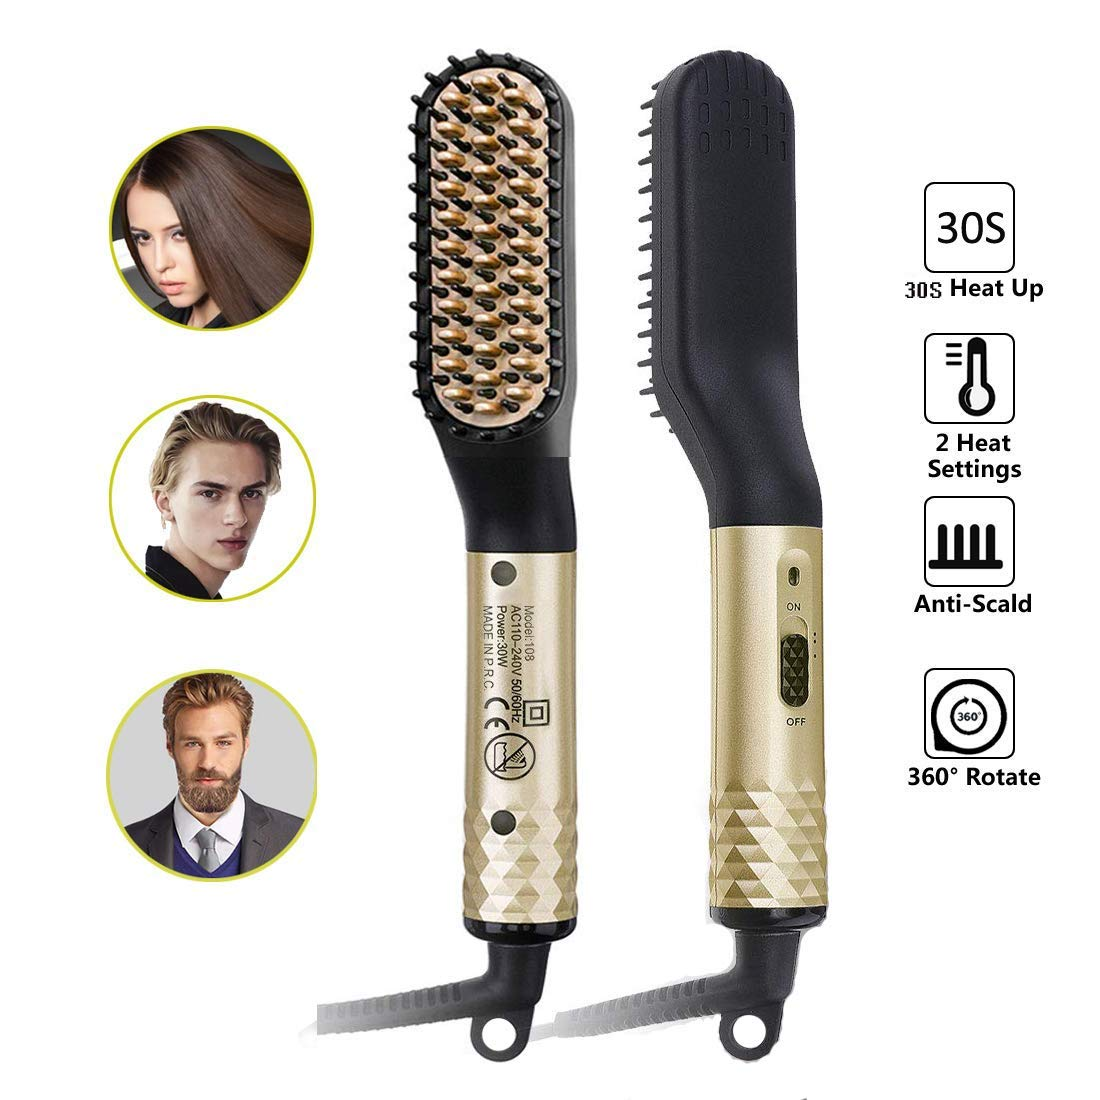 Sitsugger Beard Heated Straightener Brush for Men Women Straightener Hair Comb 2 In 1 Multifunctional Portable Ion Electric Hot Comb for Home and Travel Universal Voltage Beard Hair Comb-Gold